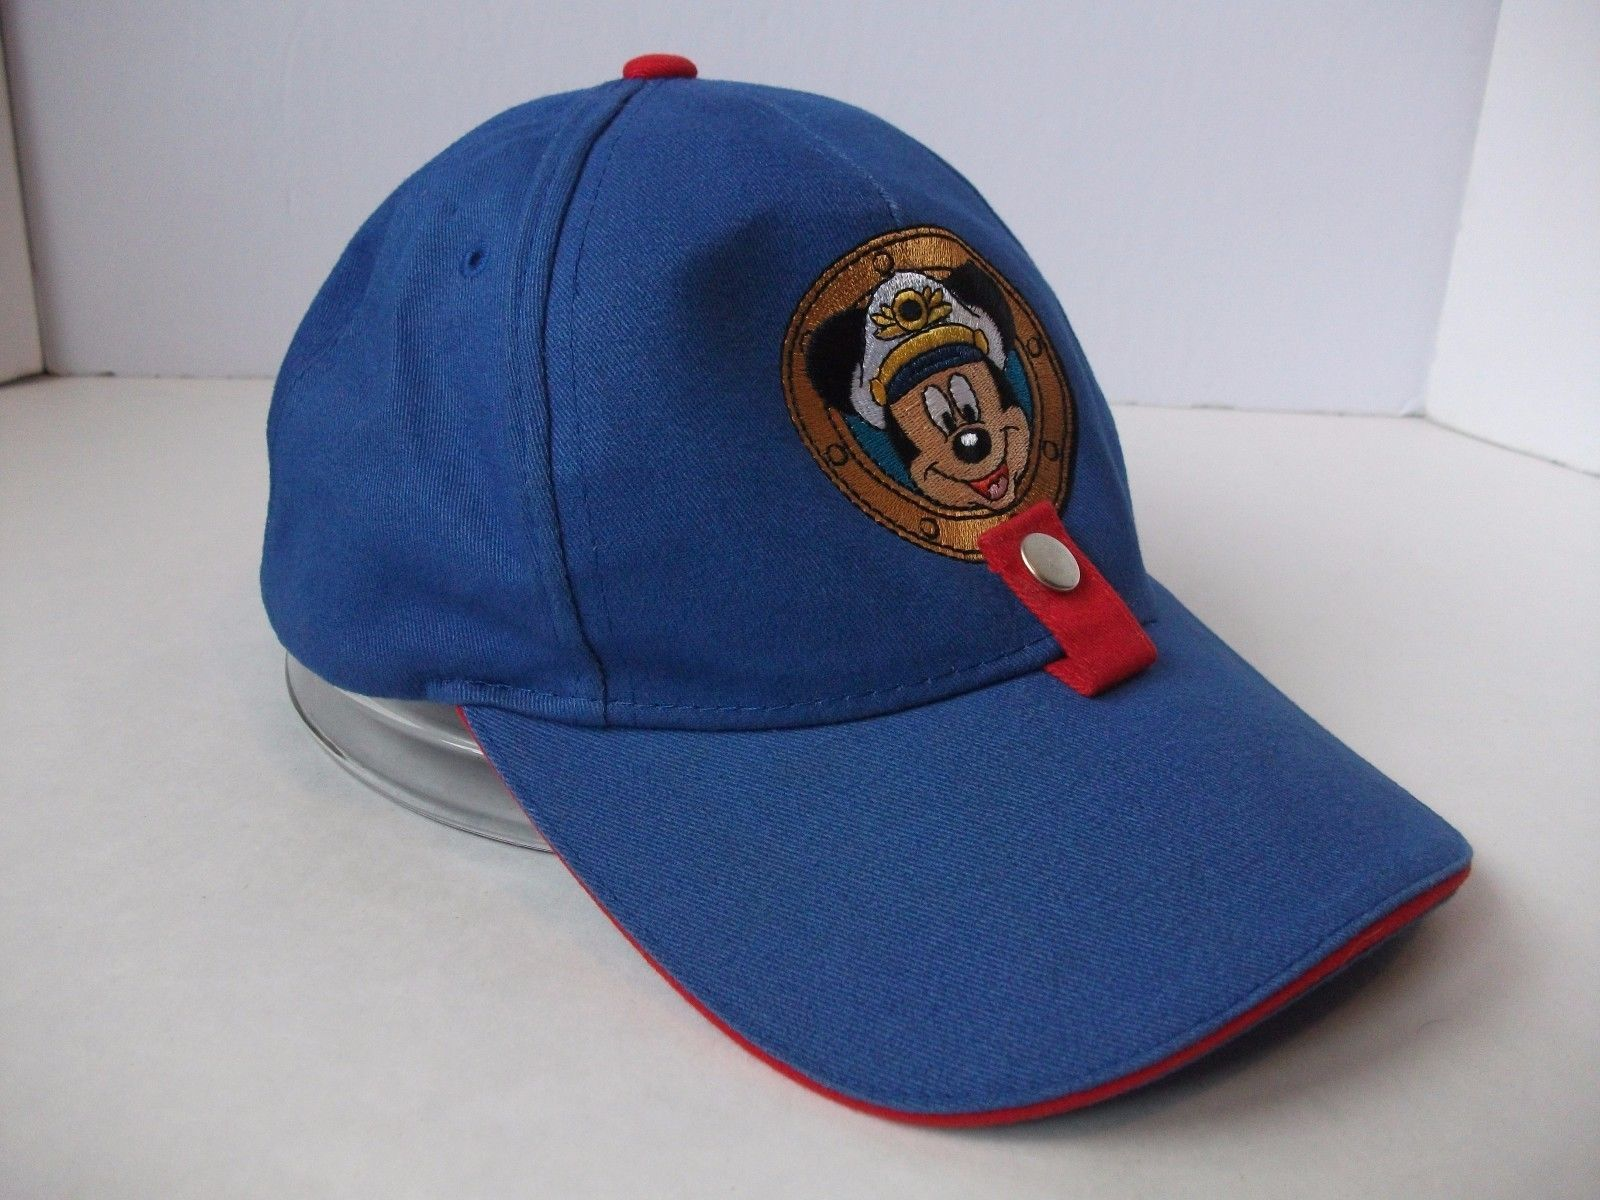 Primary image for Disney Cruise Line Mickey Mouse Hat Blue Hook Loop Baseball Cap w/ Sunglass Snap